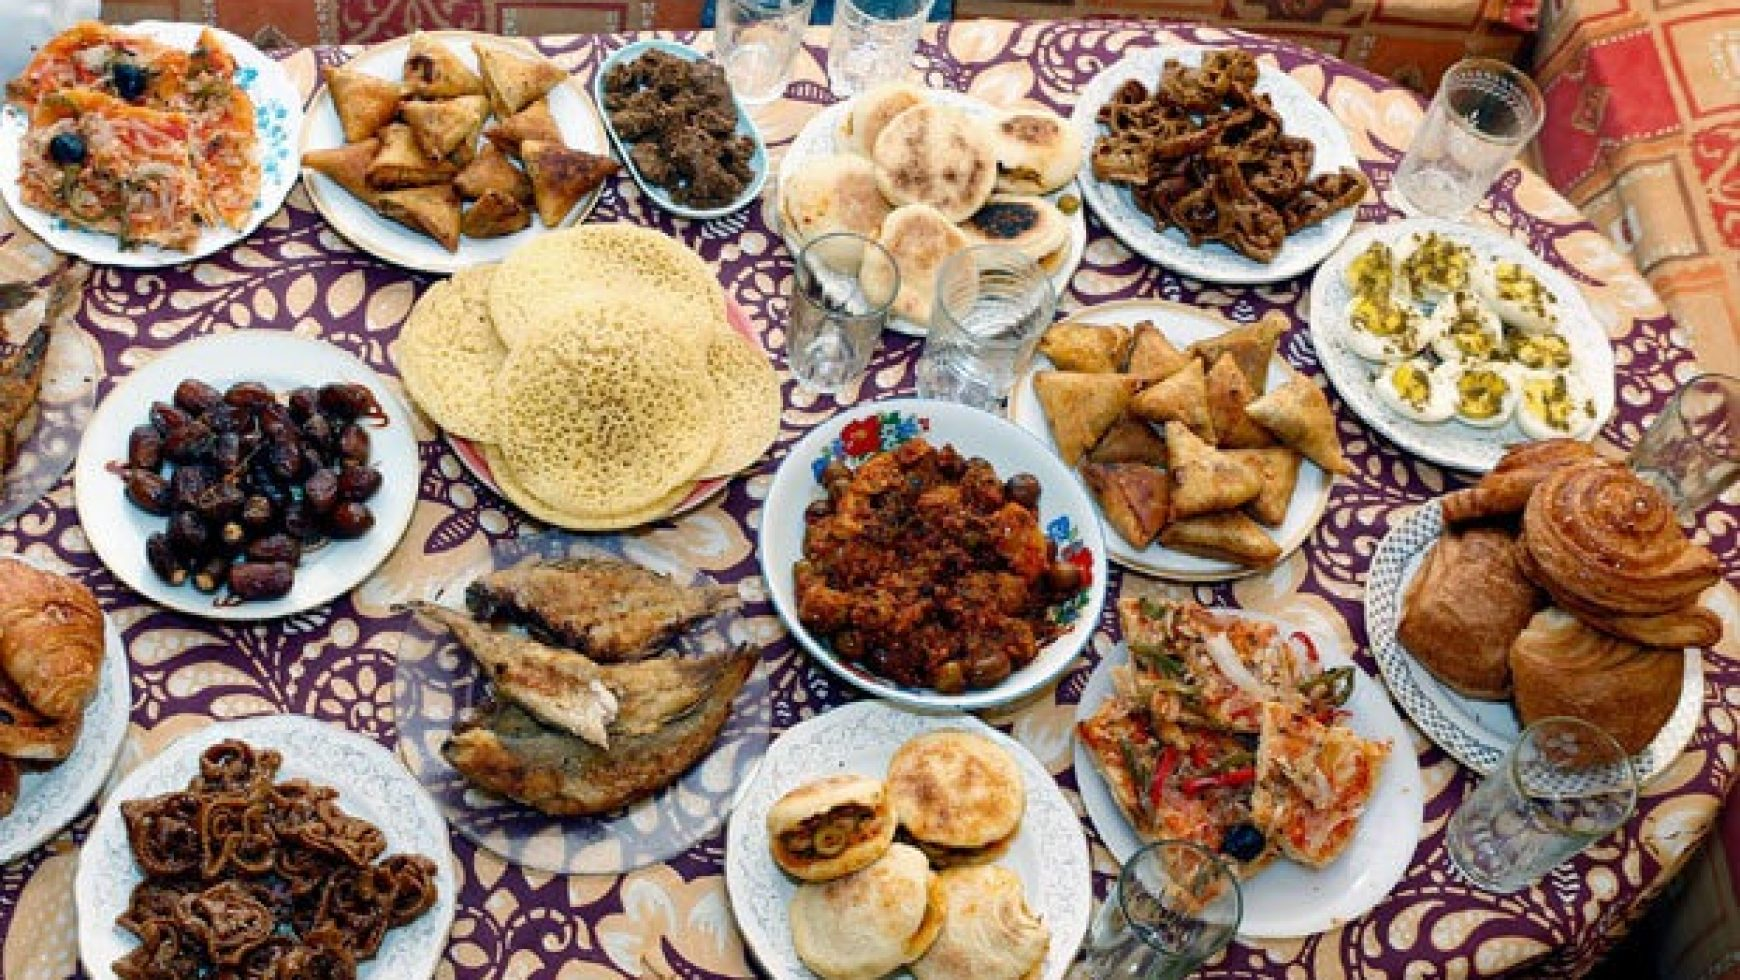 Ramazan 2019: Healthy foods for Sehri and Iftar